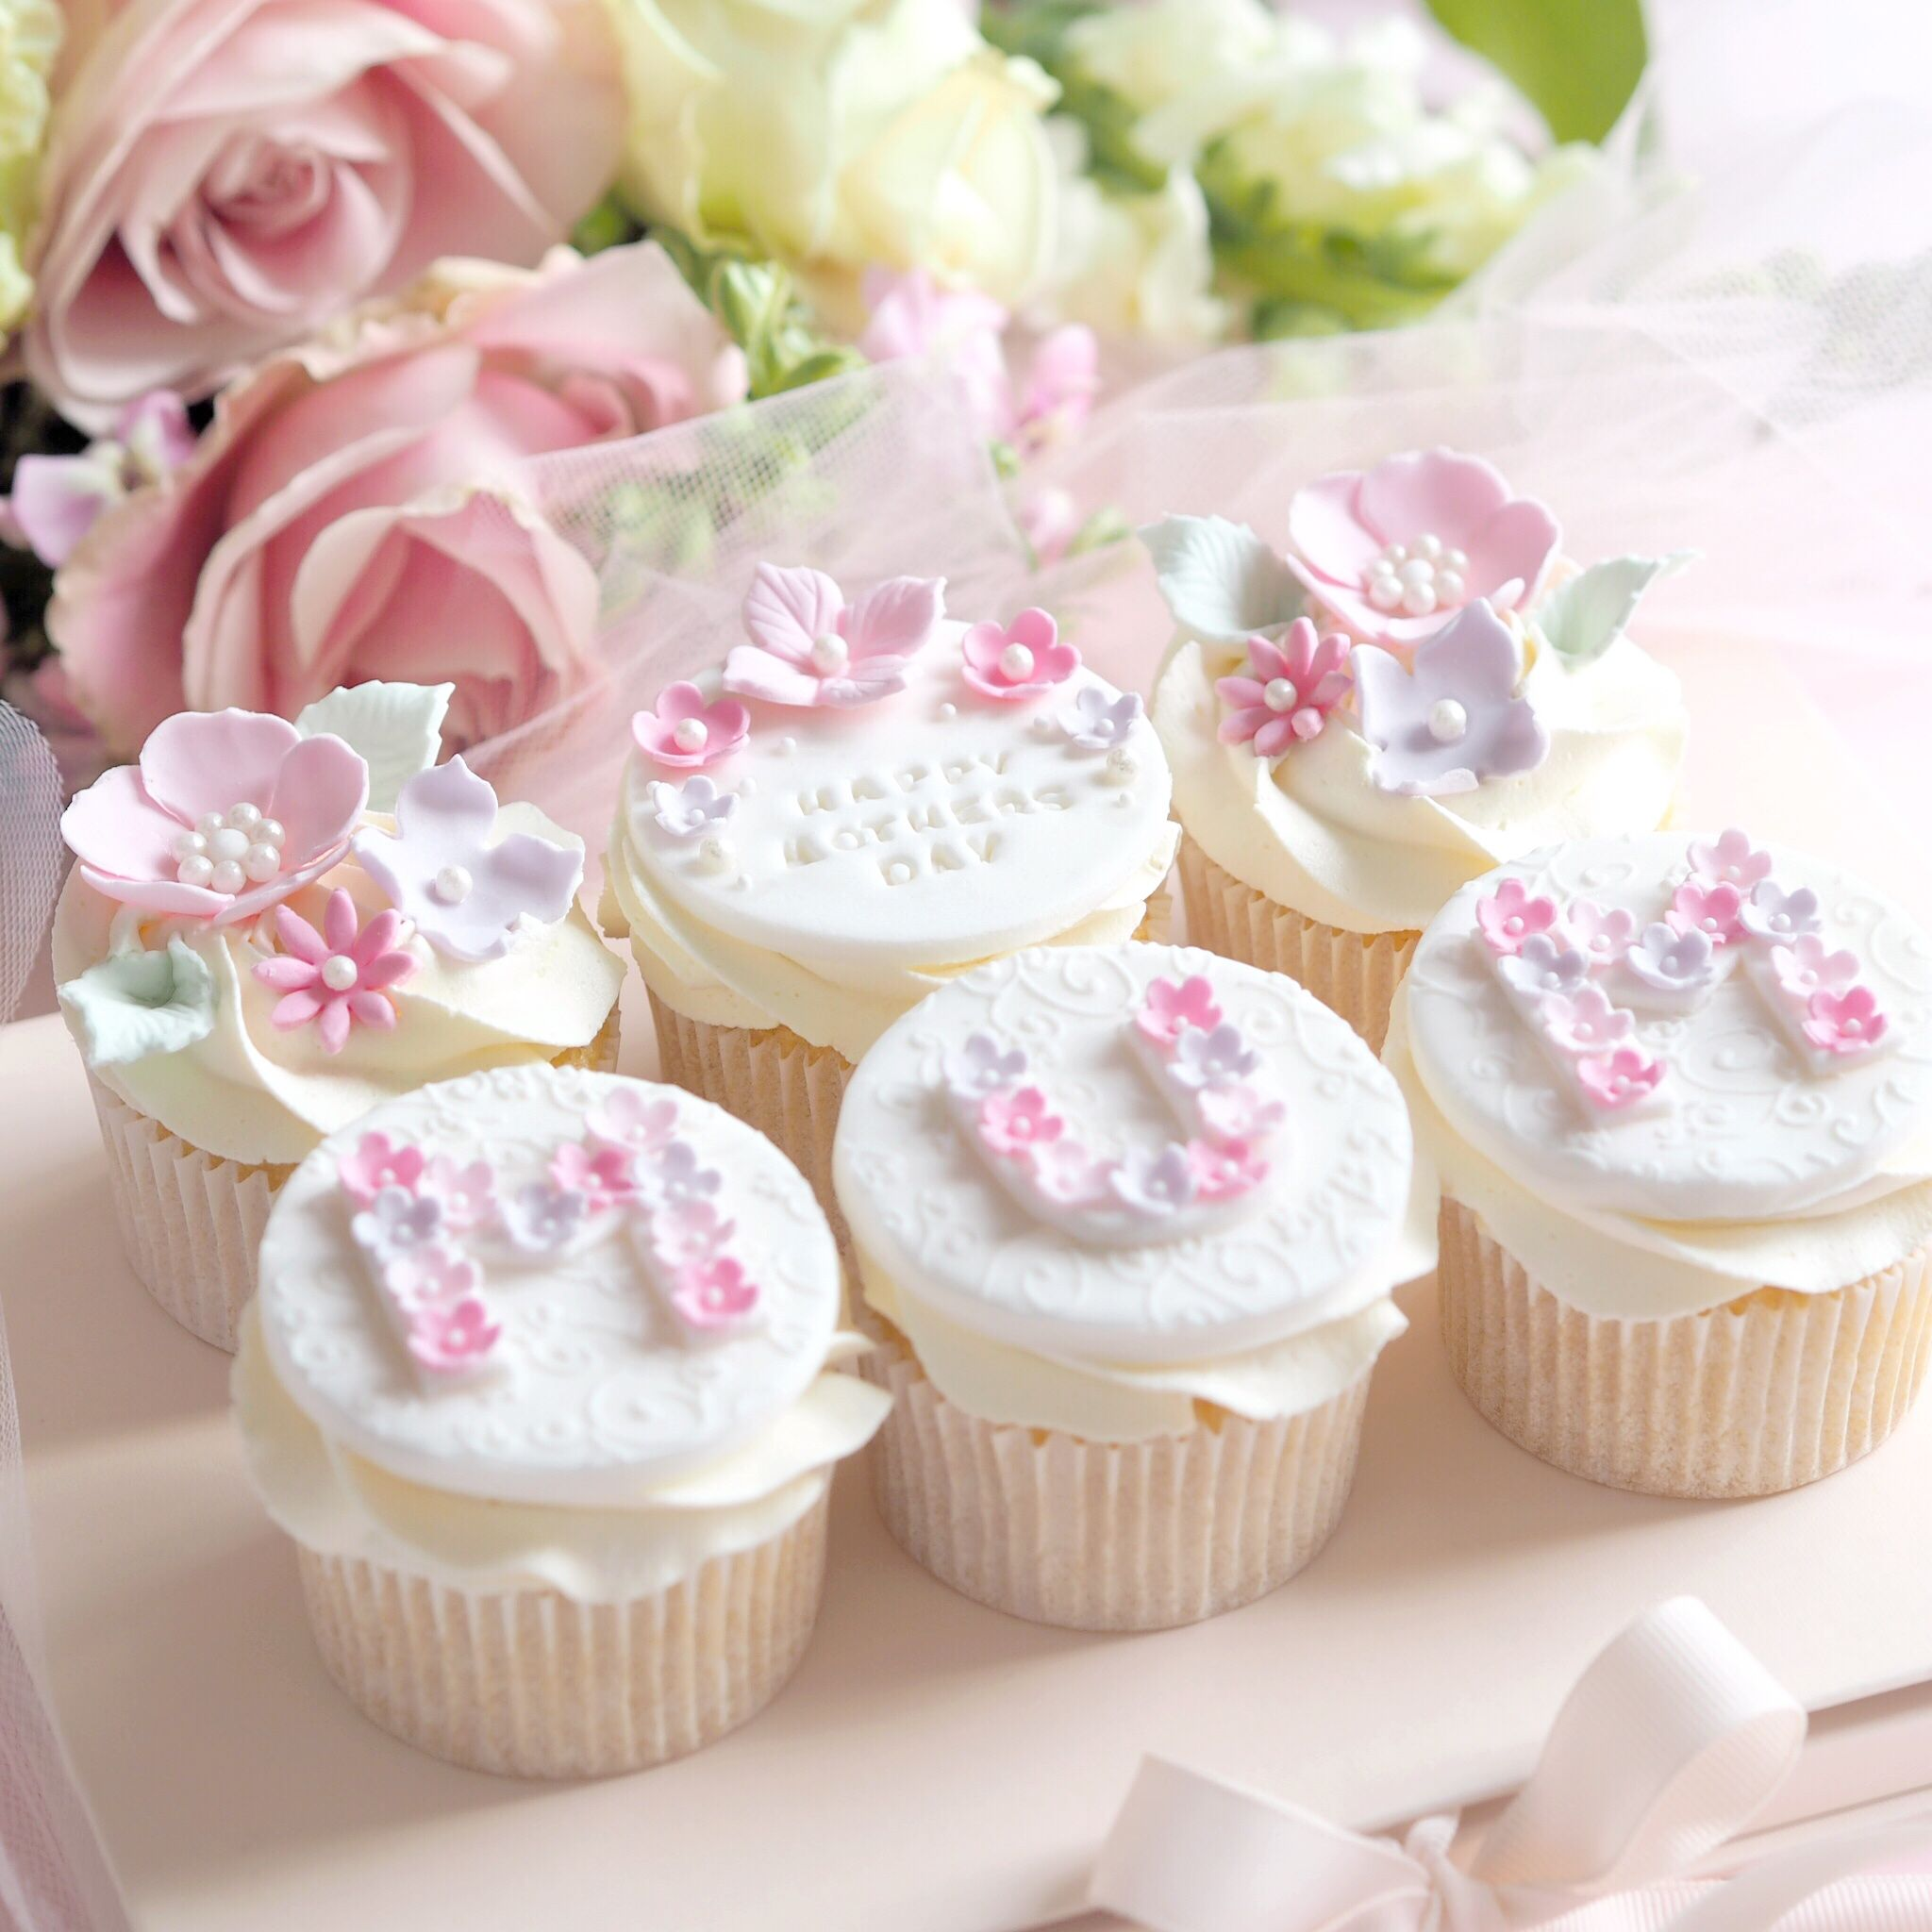 Special Gift Ideas For Mother's Day, Cupcakes | Love Catherine